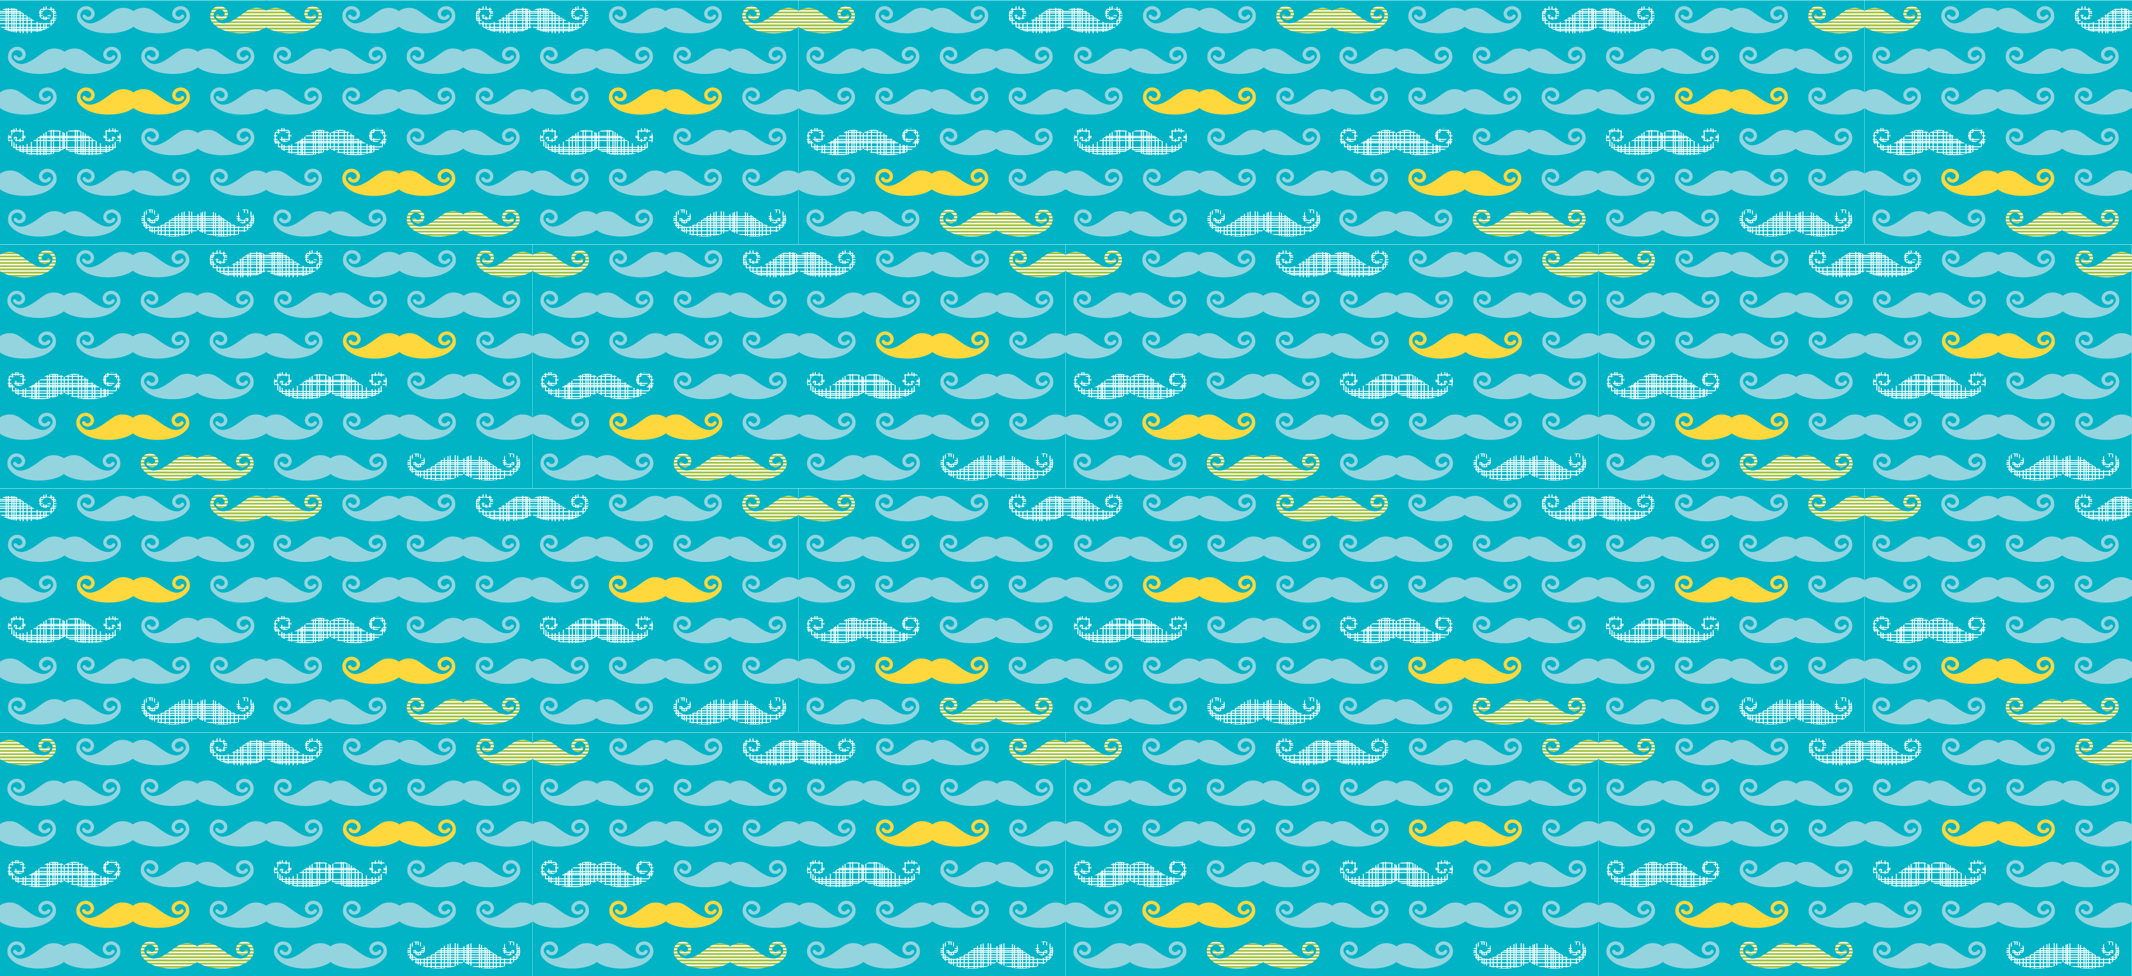 Back  gt  Wallpapers For  gt  Rainbow Mustache BackgroundBlue Mustache Wallpaper